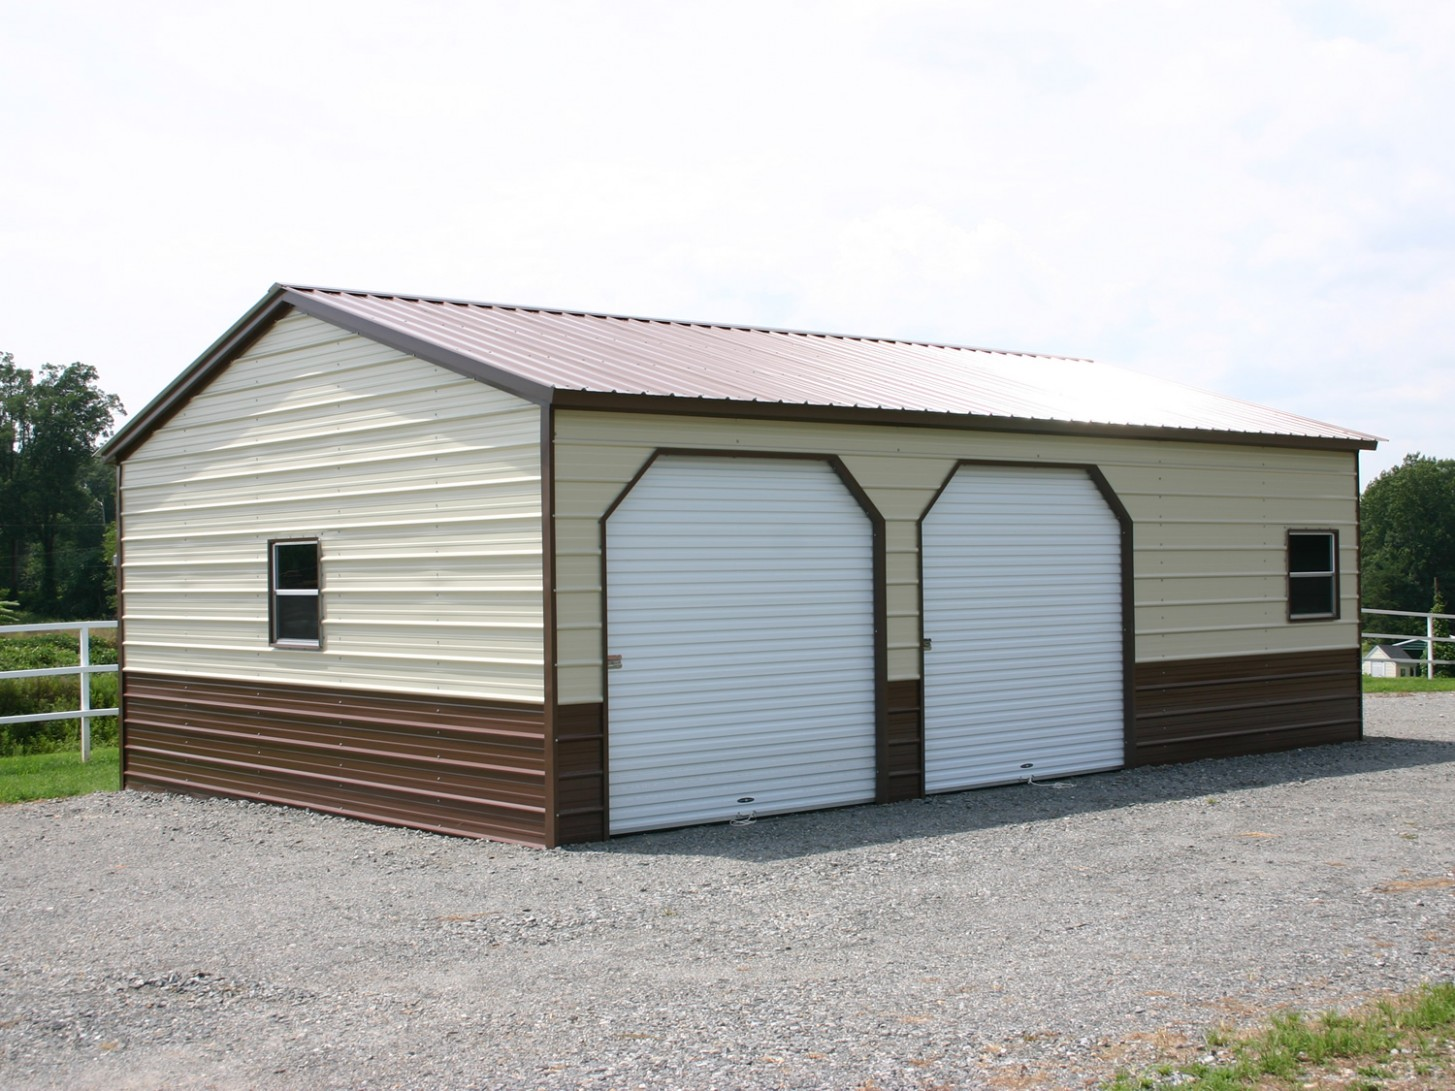 How Will Carolina Sheds Garages Be In The Future | carolina sheds garages